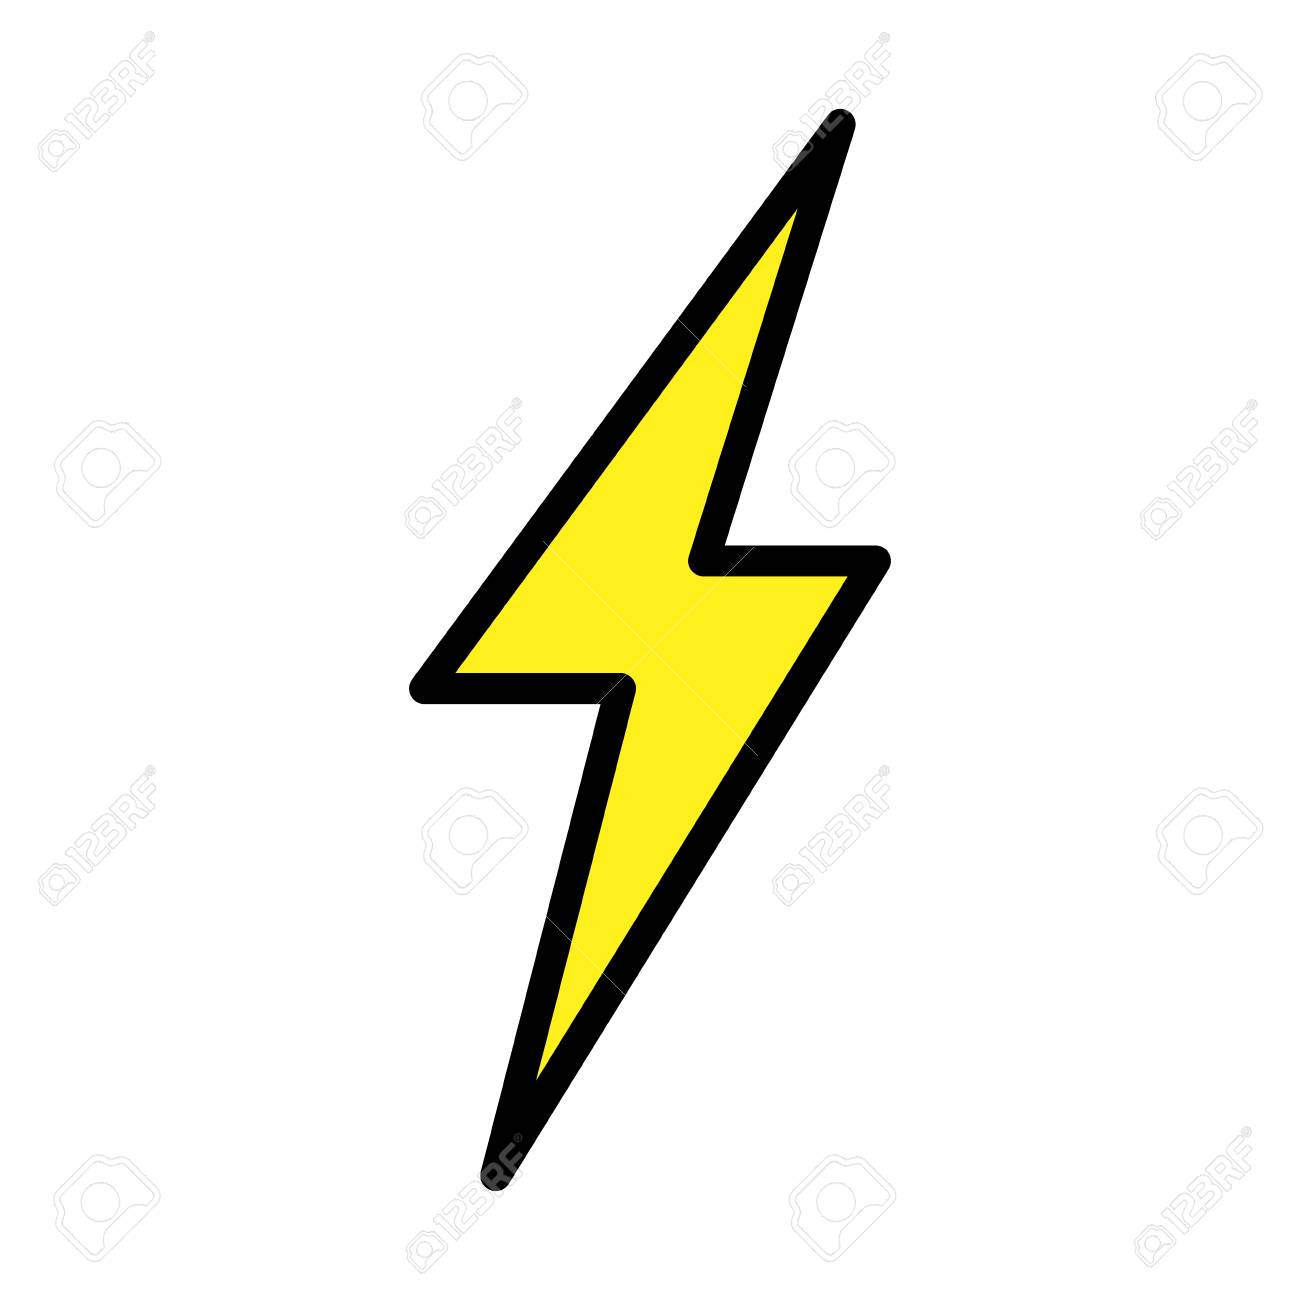 thunder ray isolated icon vector illustration design royalty free cliparts vectors and stock illustration image 97860946 thunder ray isolated icon vector illustration design